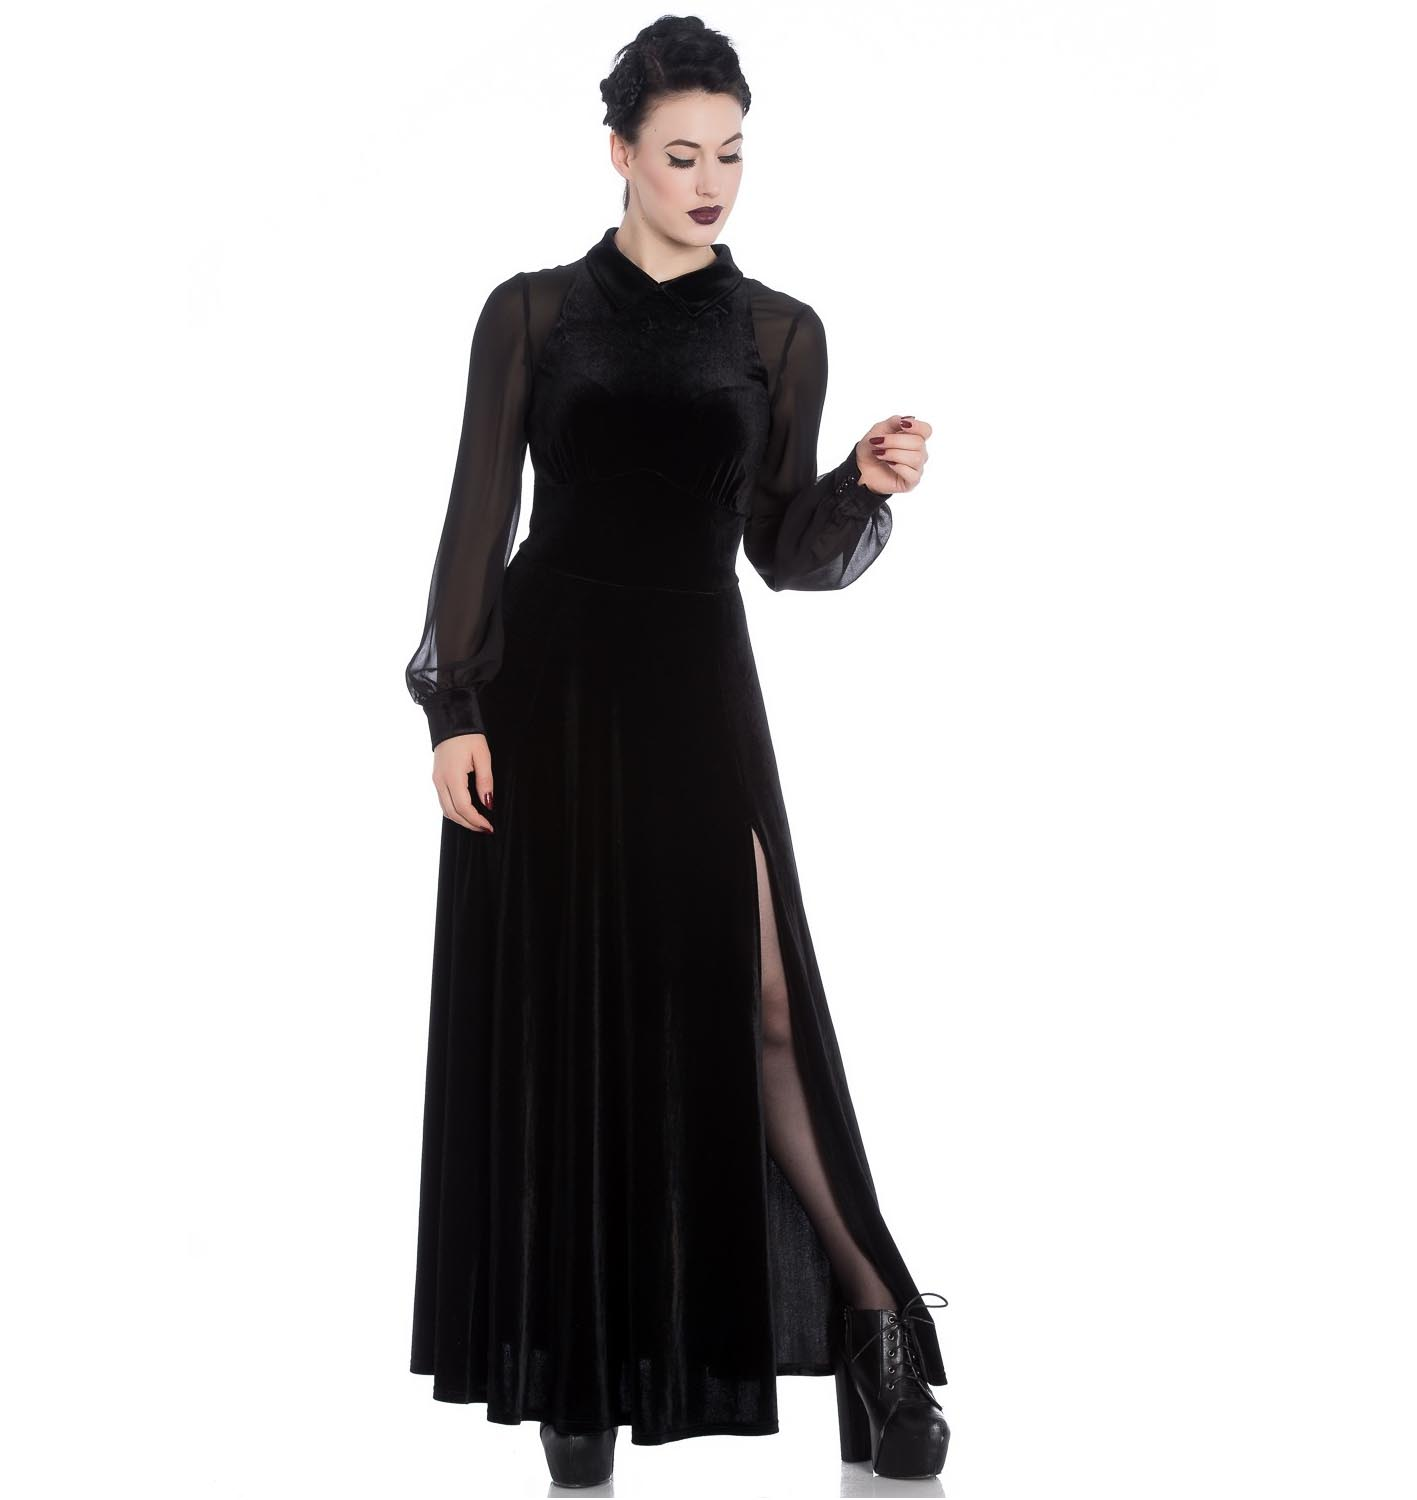 Hell-Bunny-Vampire-Goth-Elegant-Maxi-Dress-ESTELLE-Black-Velvet-Mesh-All-Sizes thumbnail 3